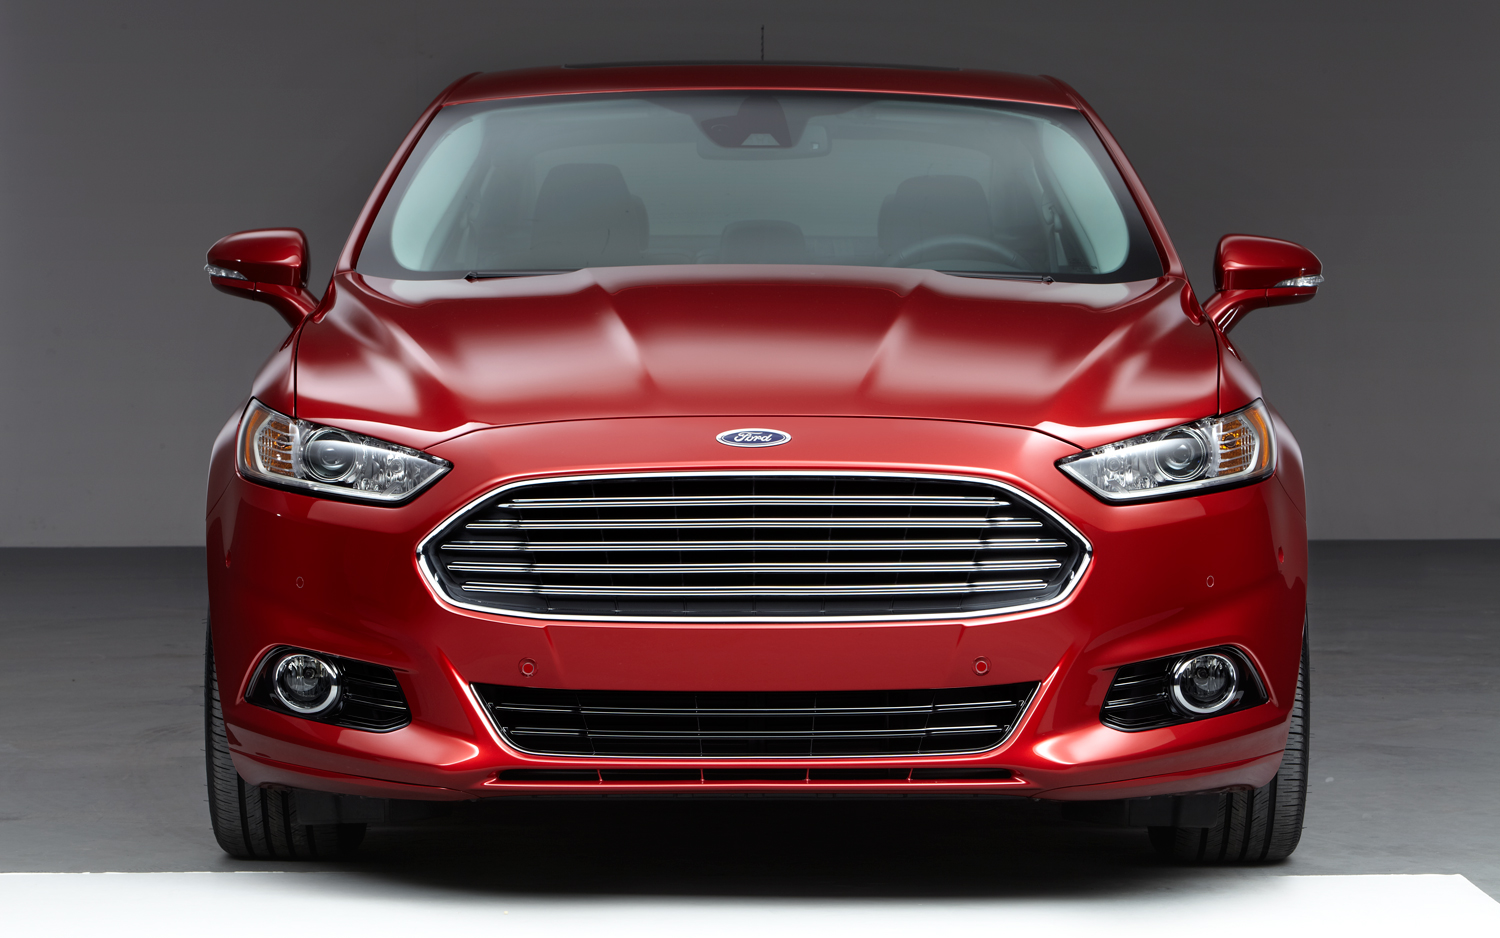 ford fusion images